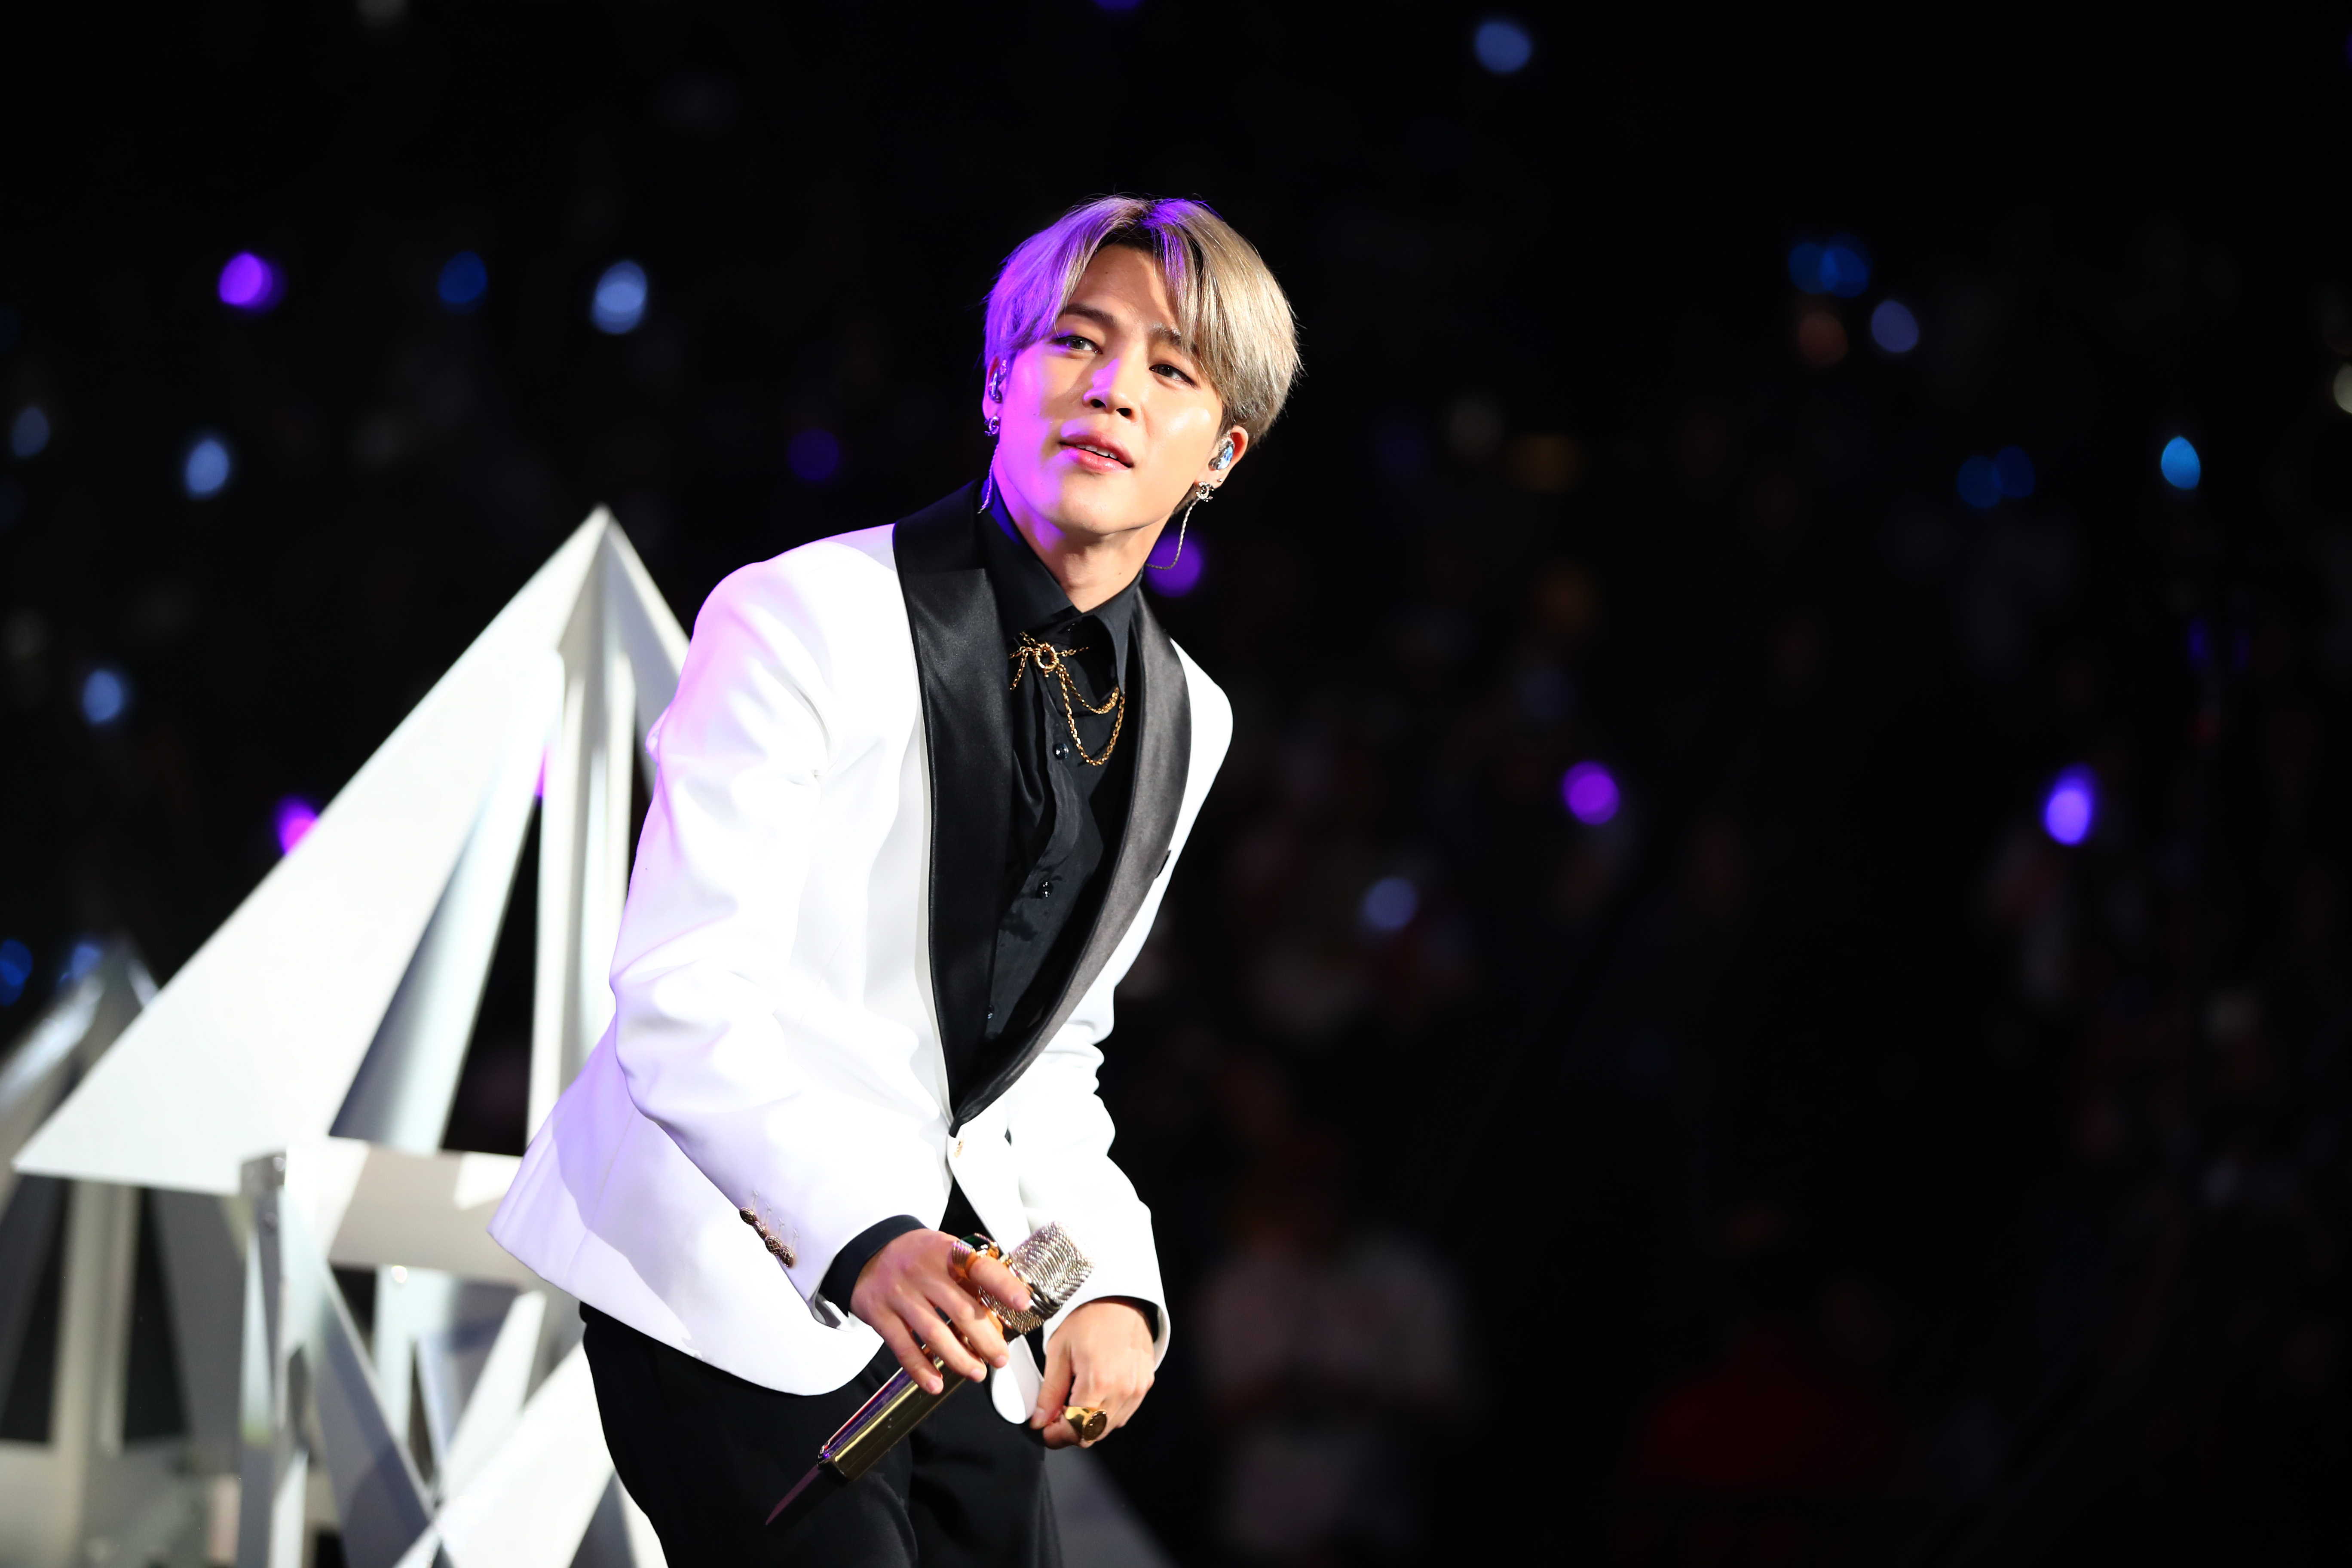 Bts Jimin Trends On Twitter After Subtly Hinting He Has A New Hair Color